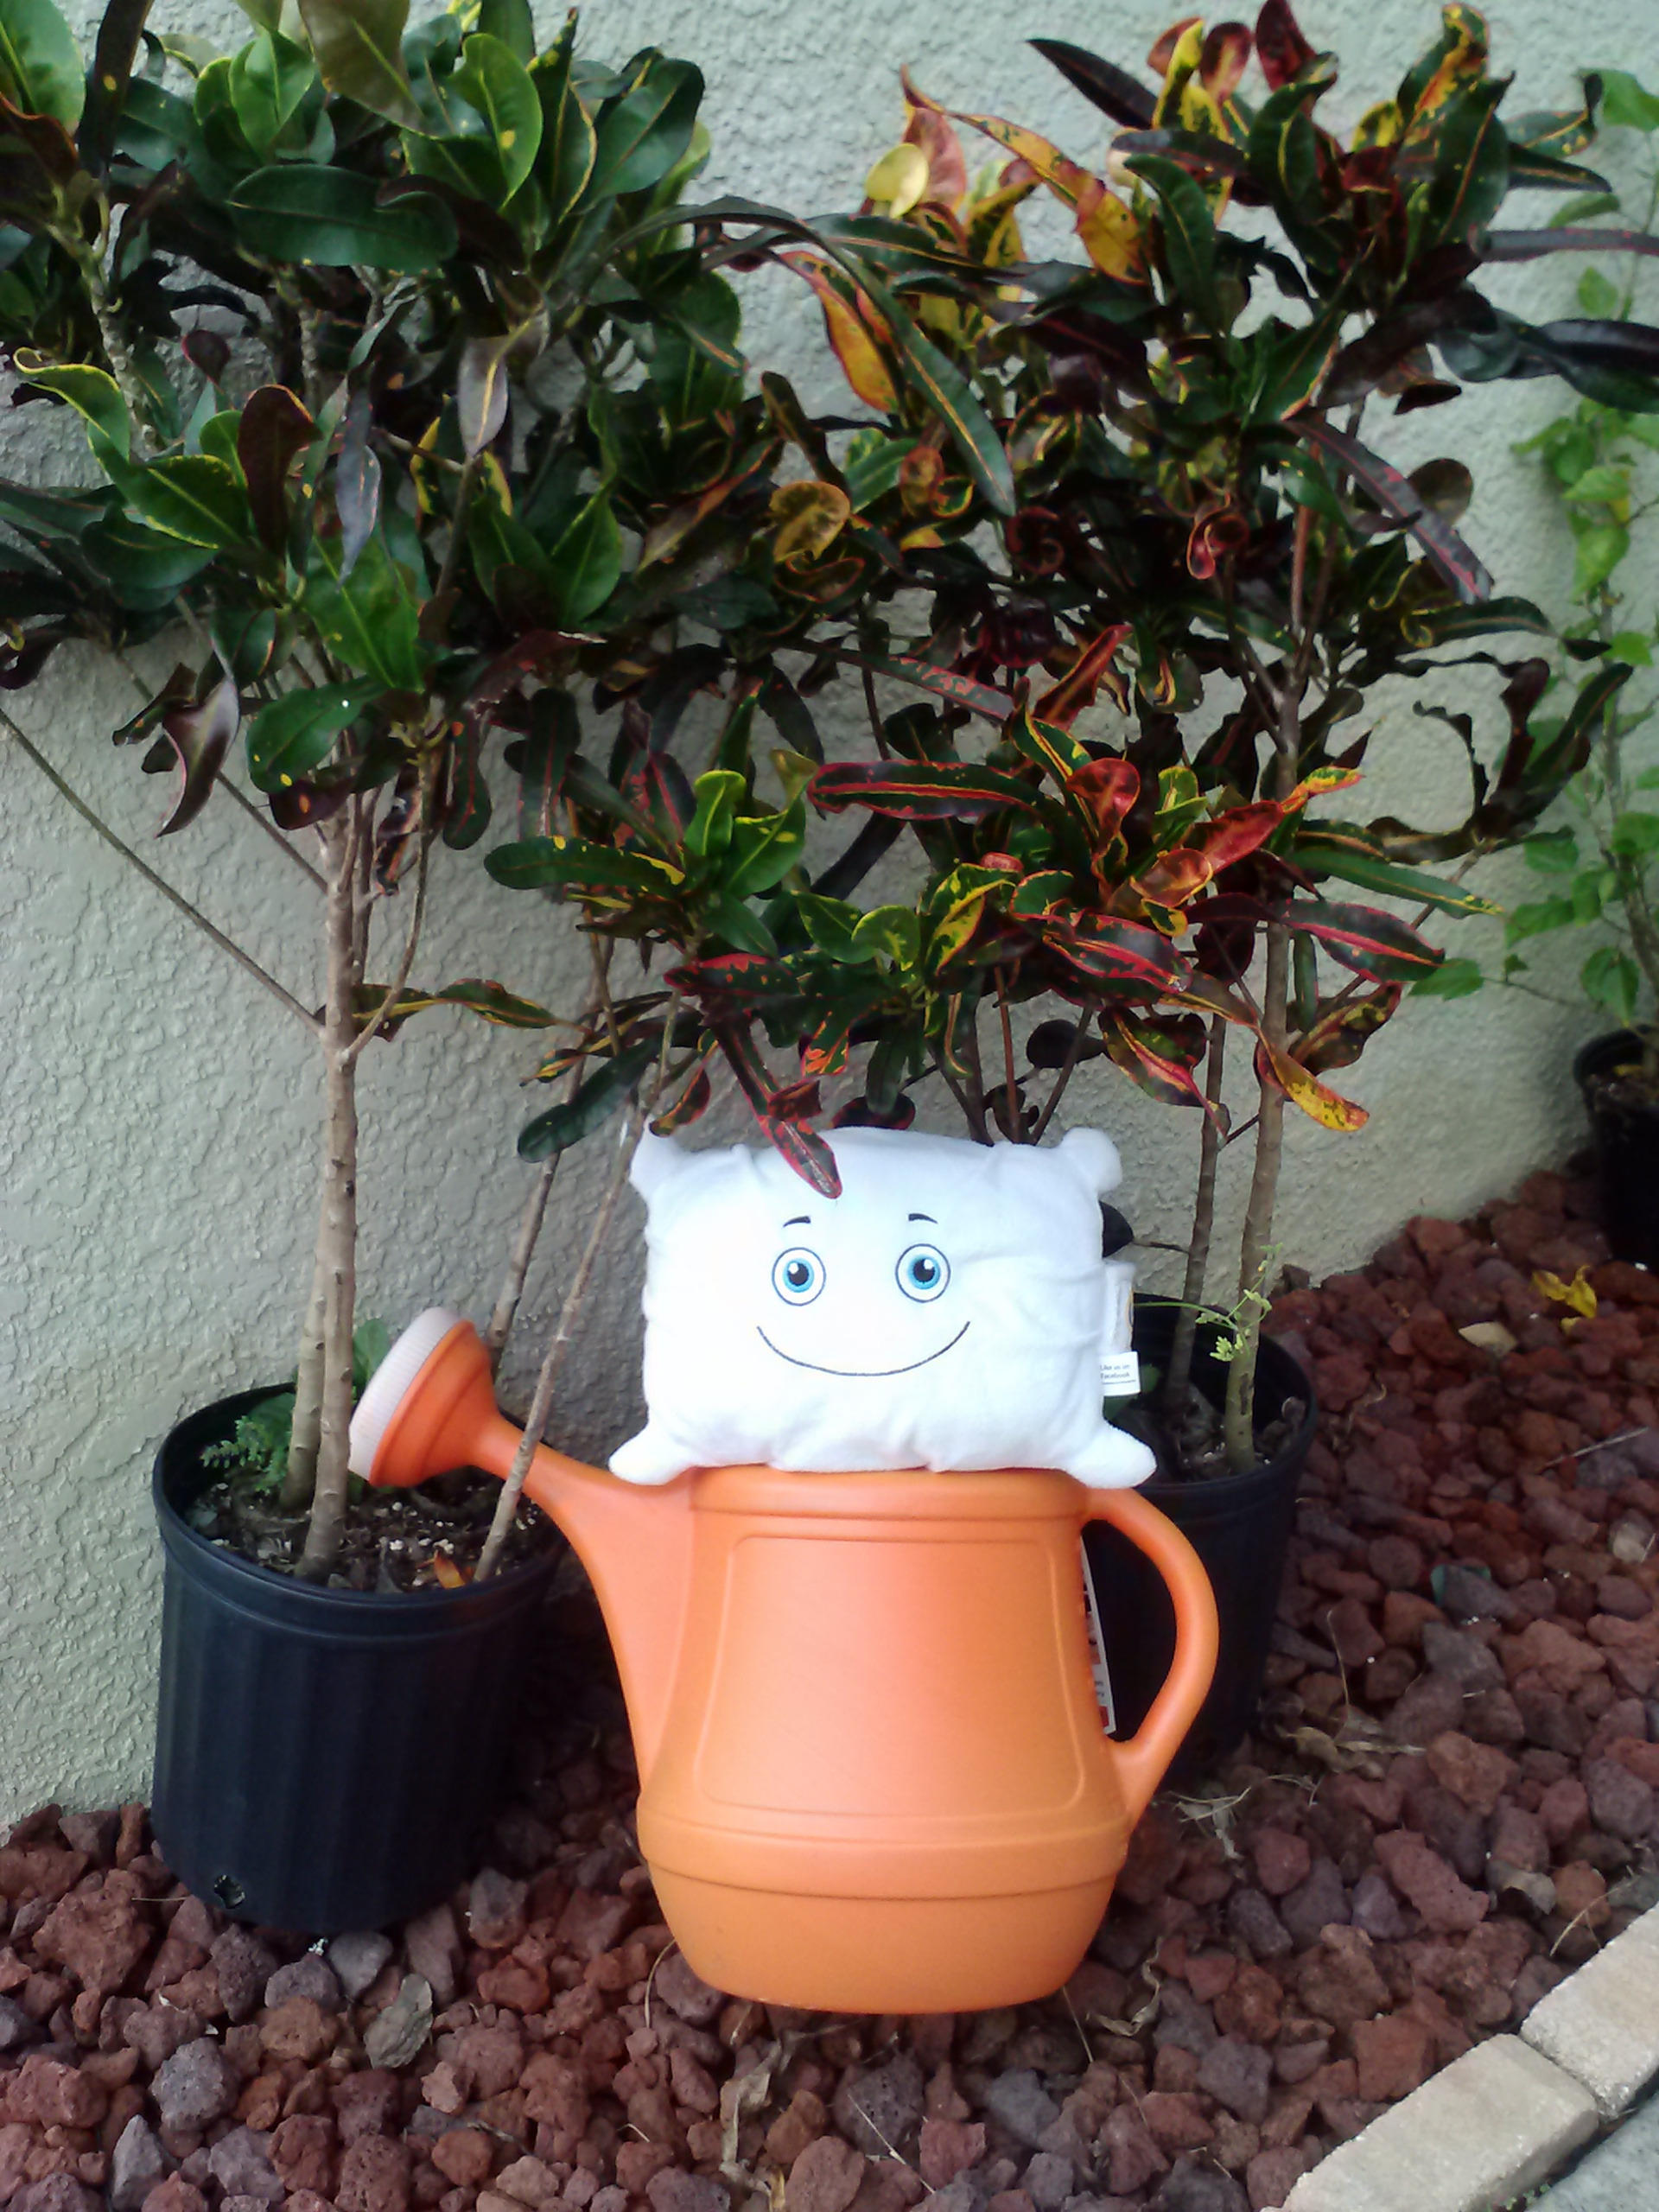 McStuffy doing his chore for the day - watering plants